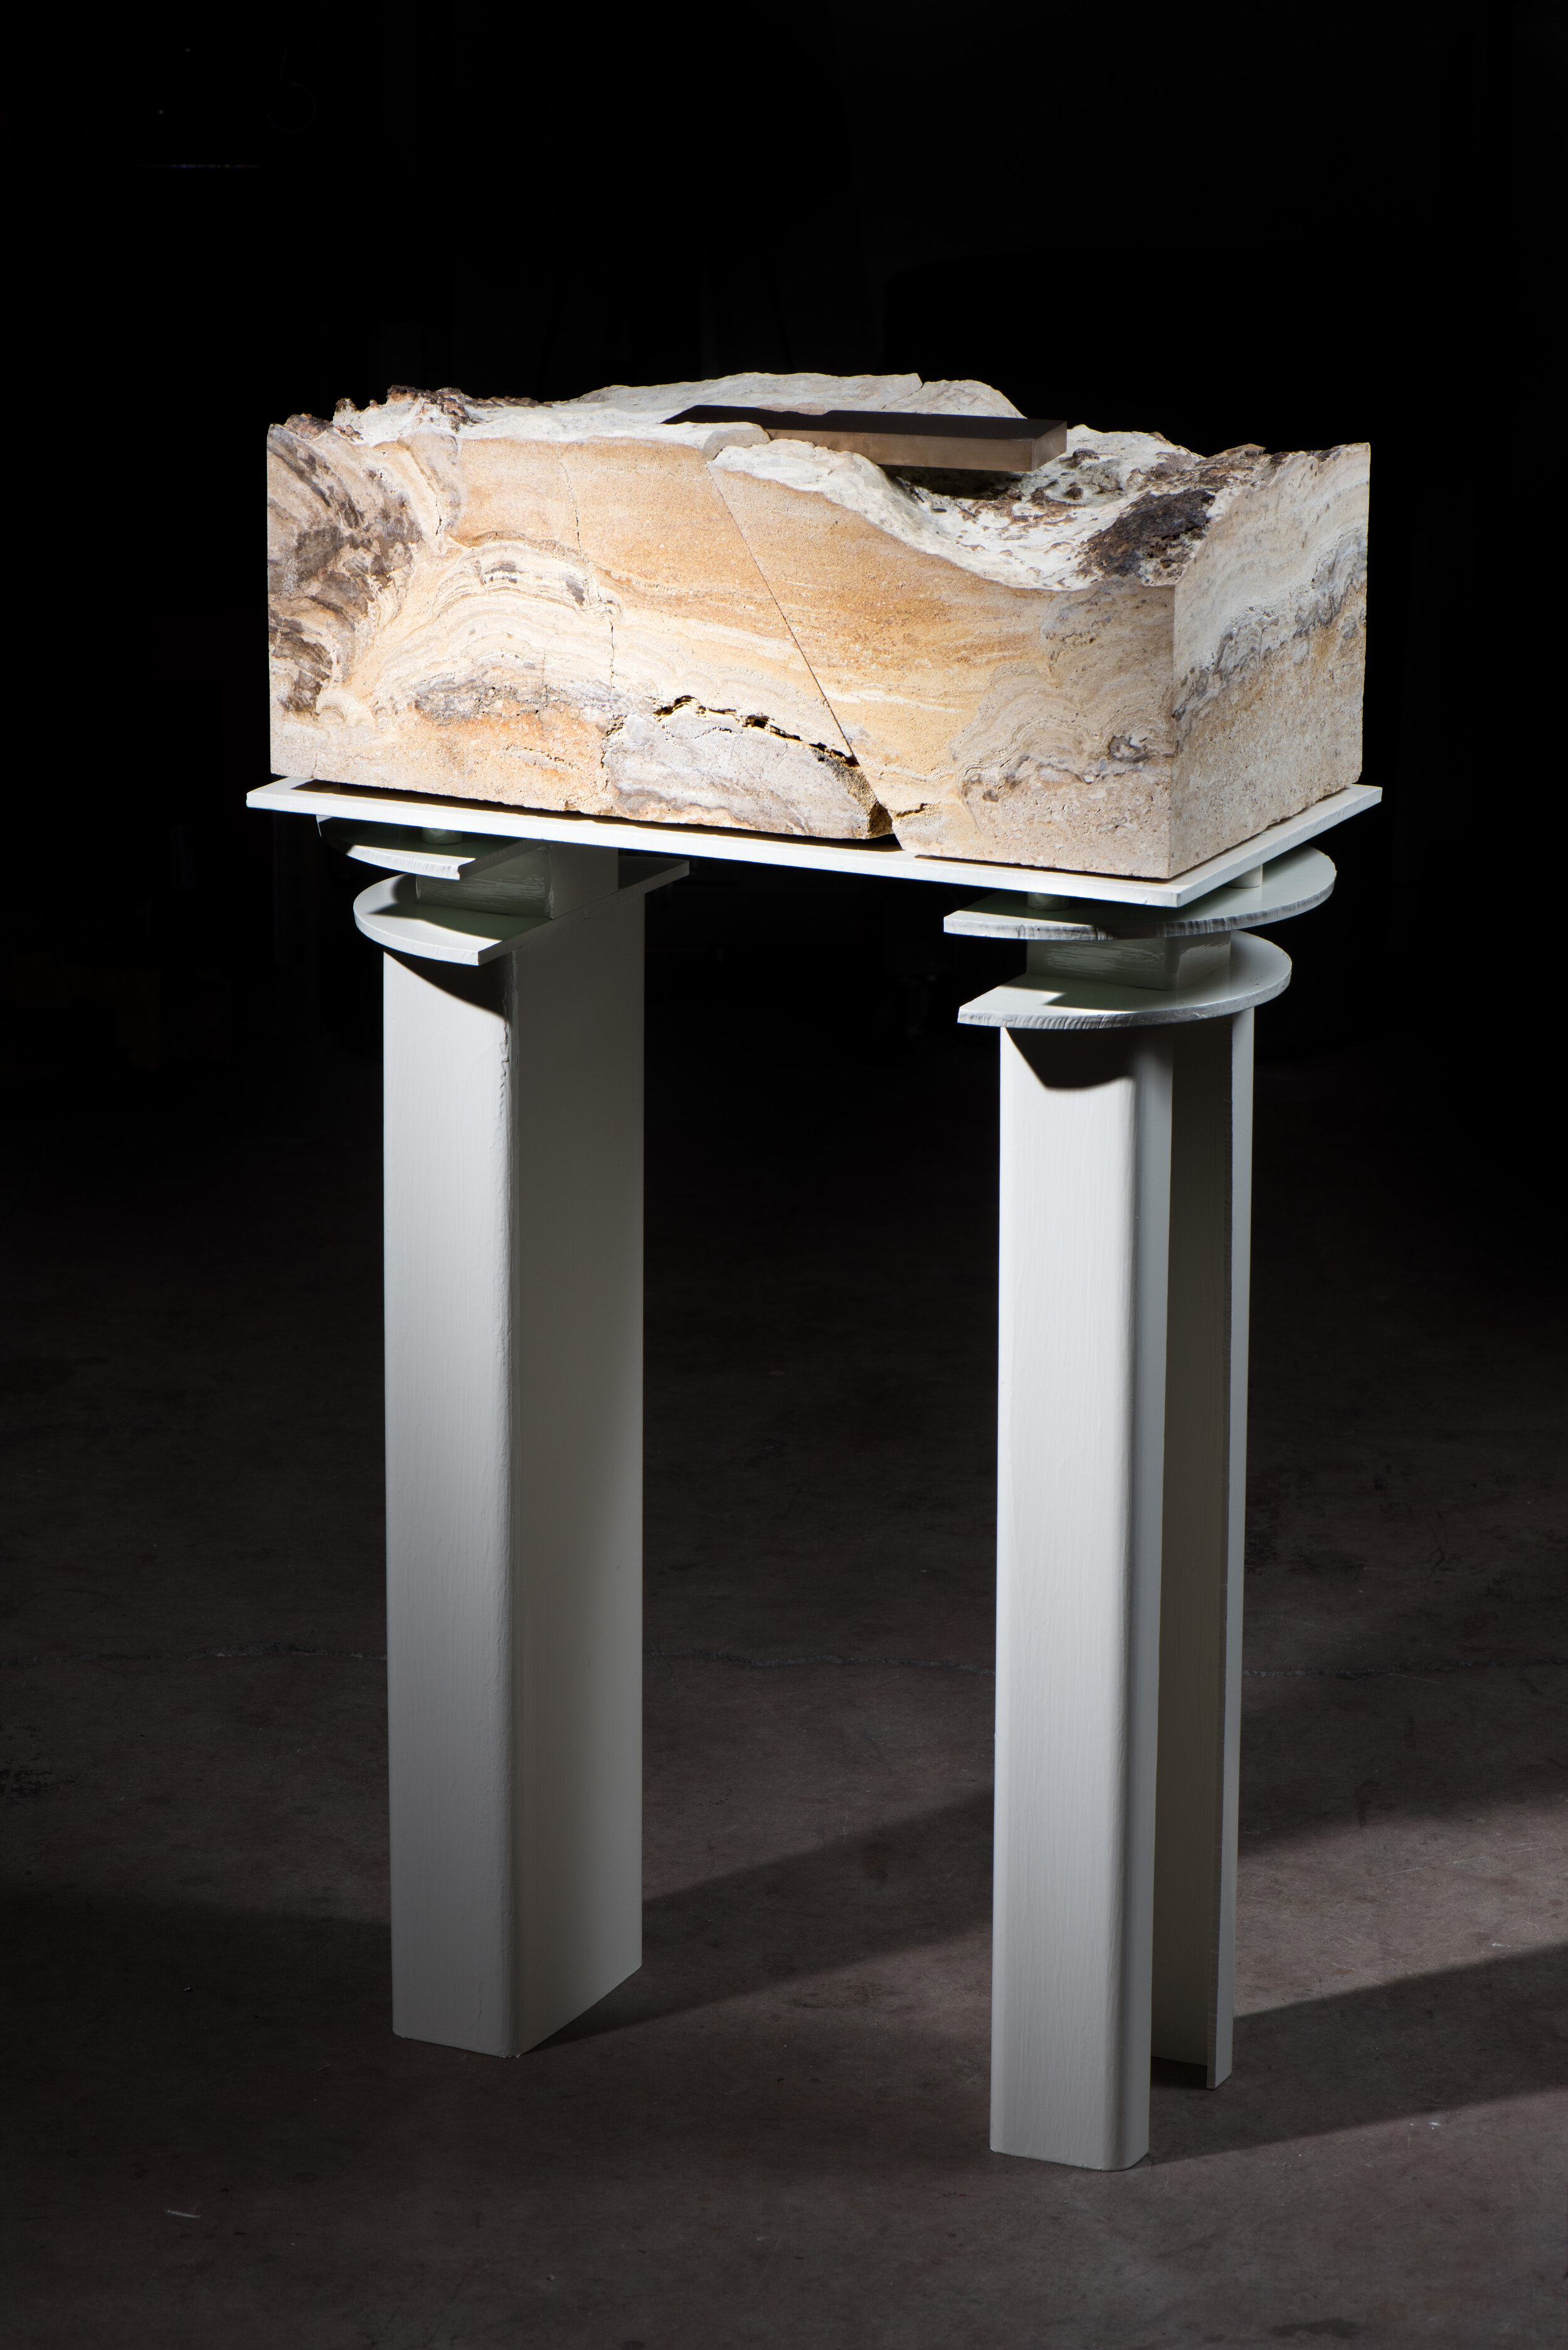 Model of an Earth Fastener on the Delphi Fault (Temple of Apollo) , 2019 Steel, enamel, limestone, and bronze 43 x 27 x 14 inches 109.2 x 68.63 x 35.6 cm Unique KYWH-0019